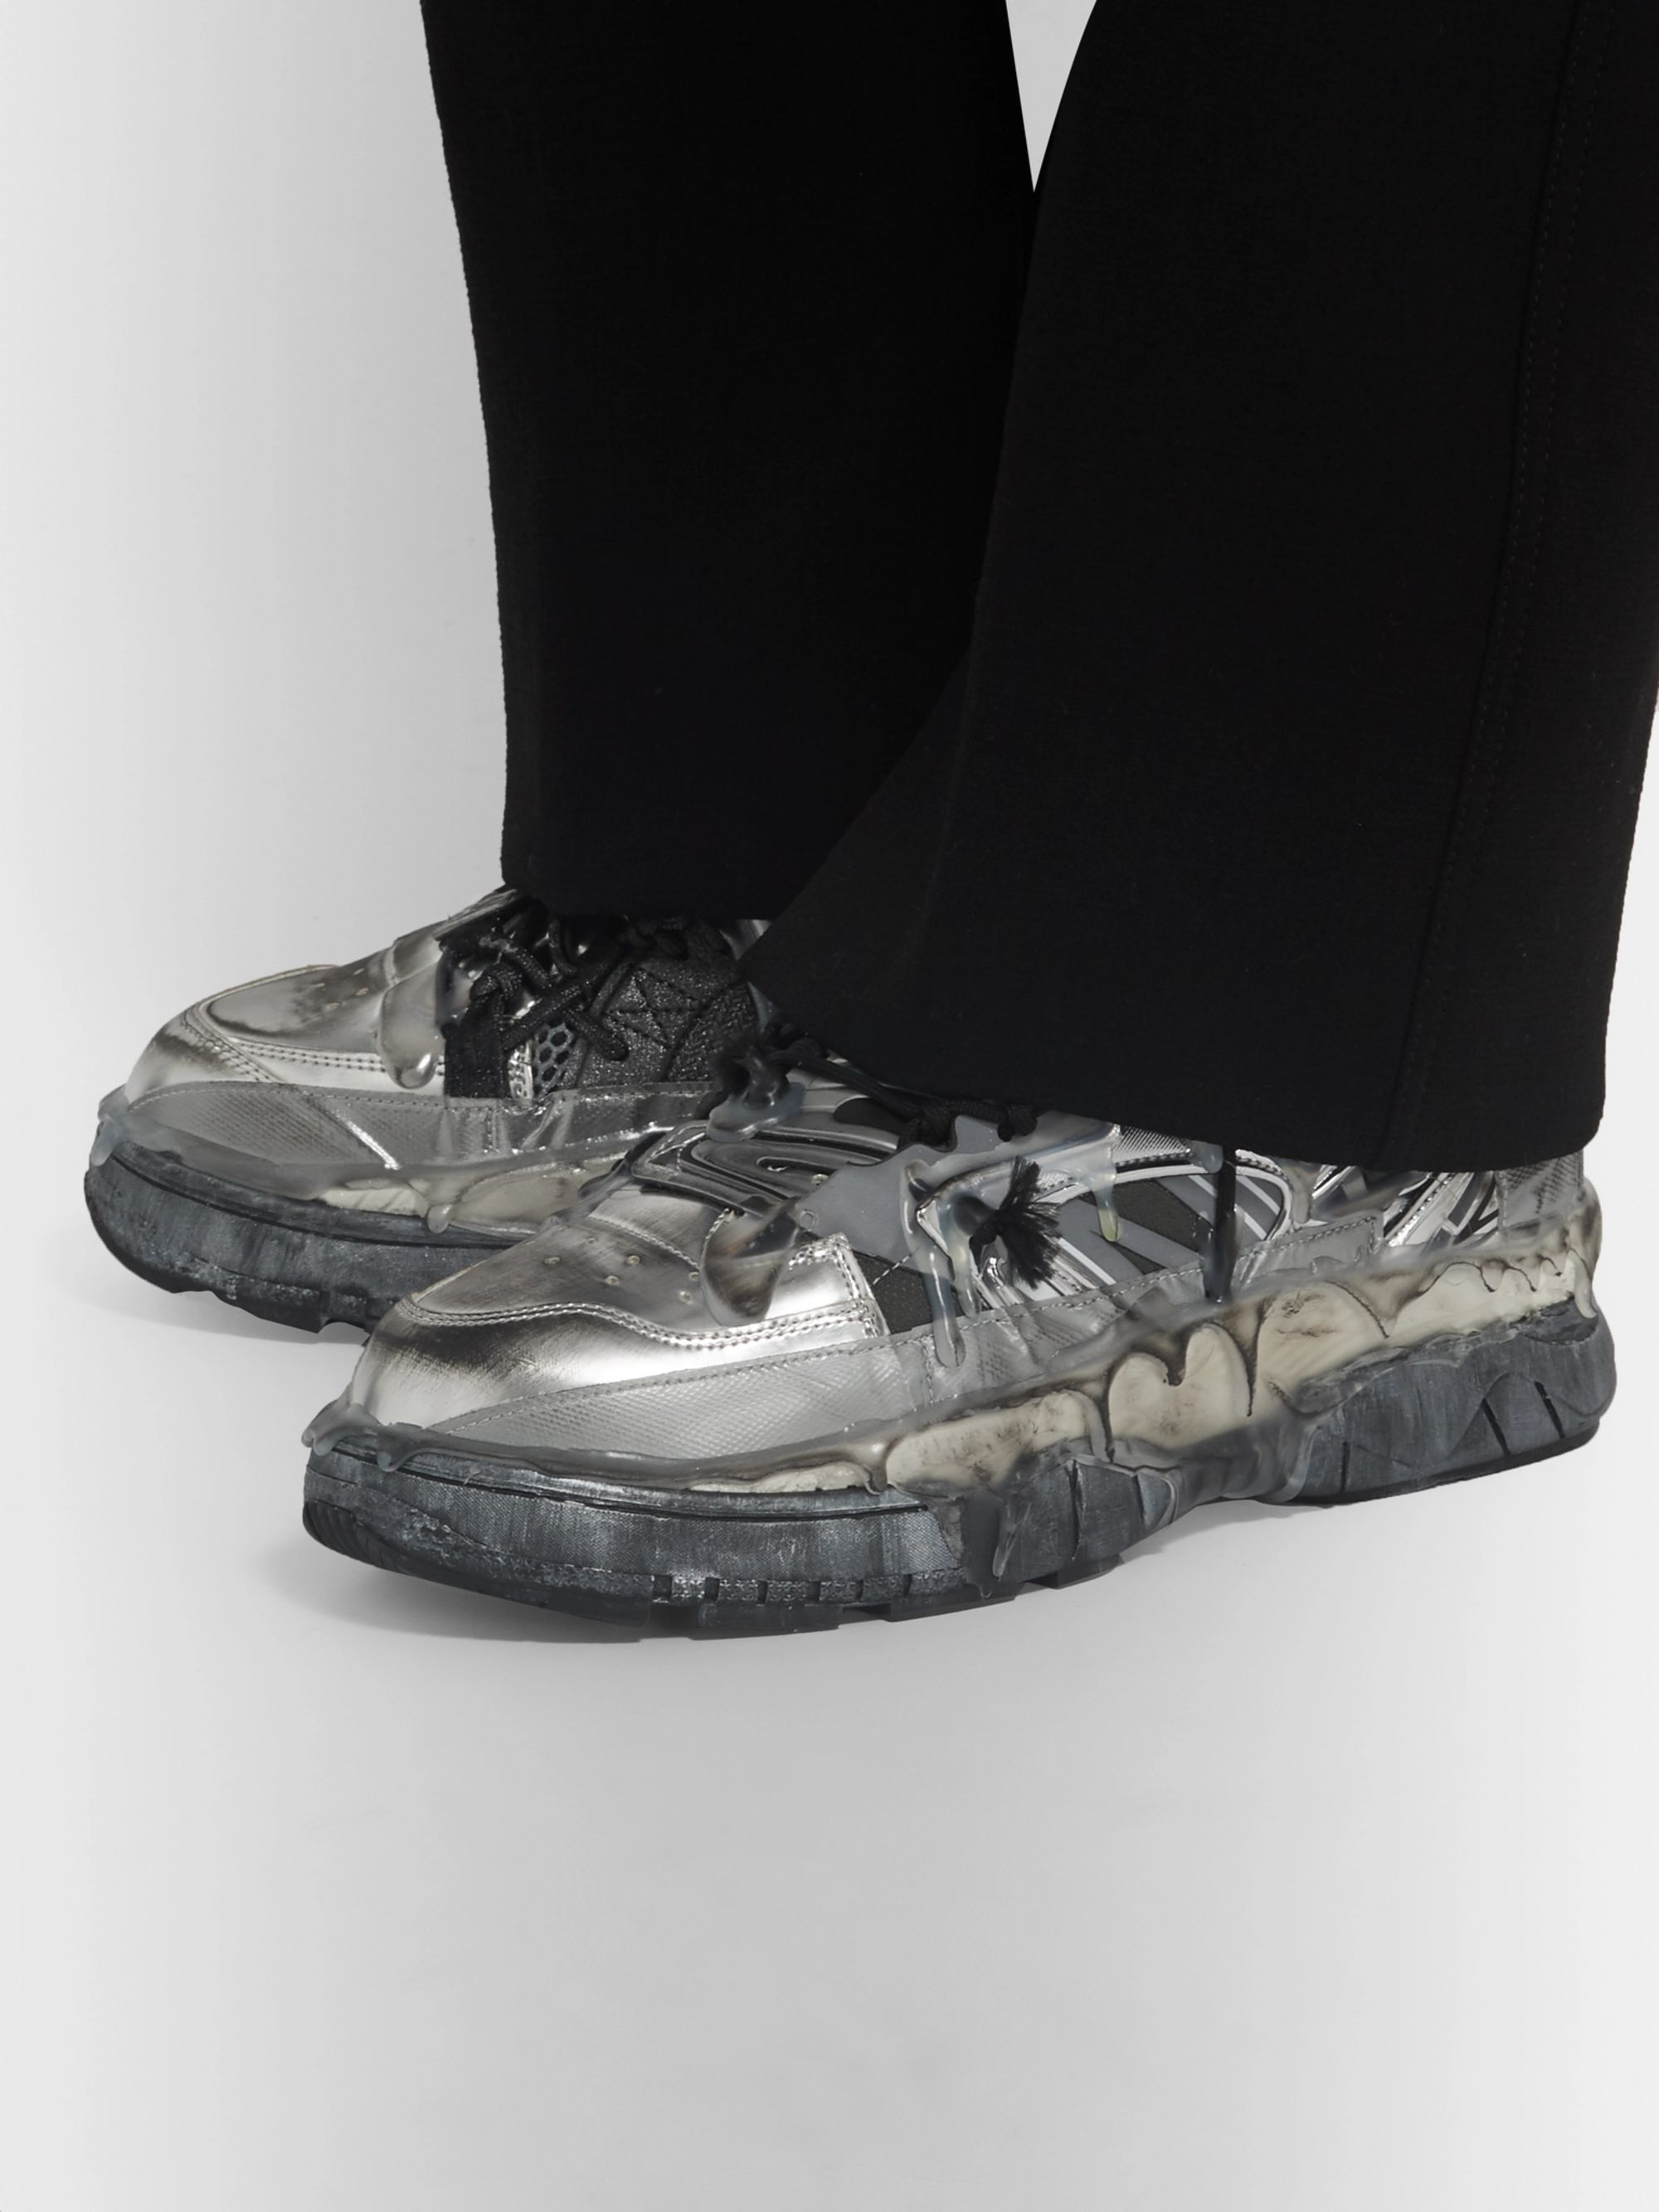 Maison Margiela Fusion Distressed Leather, Mesh and Rubber Sneakers